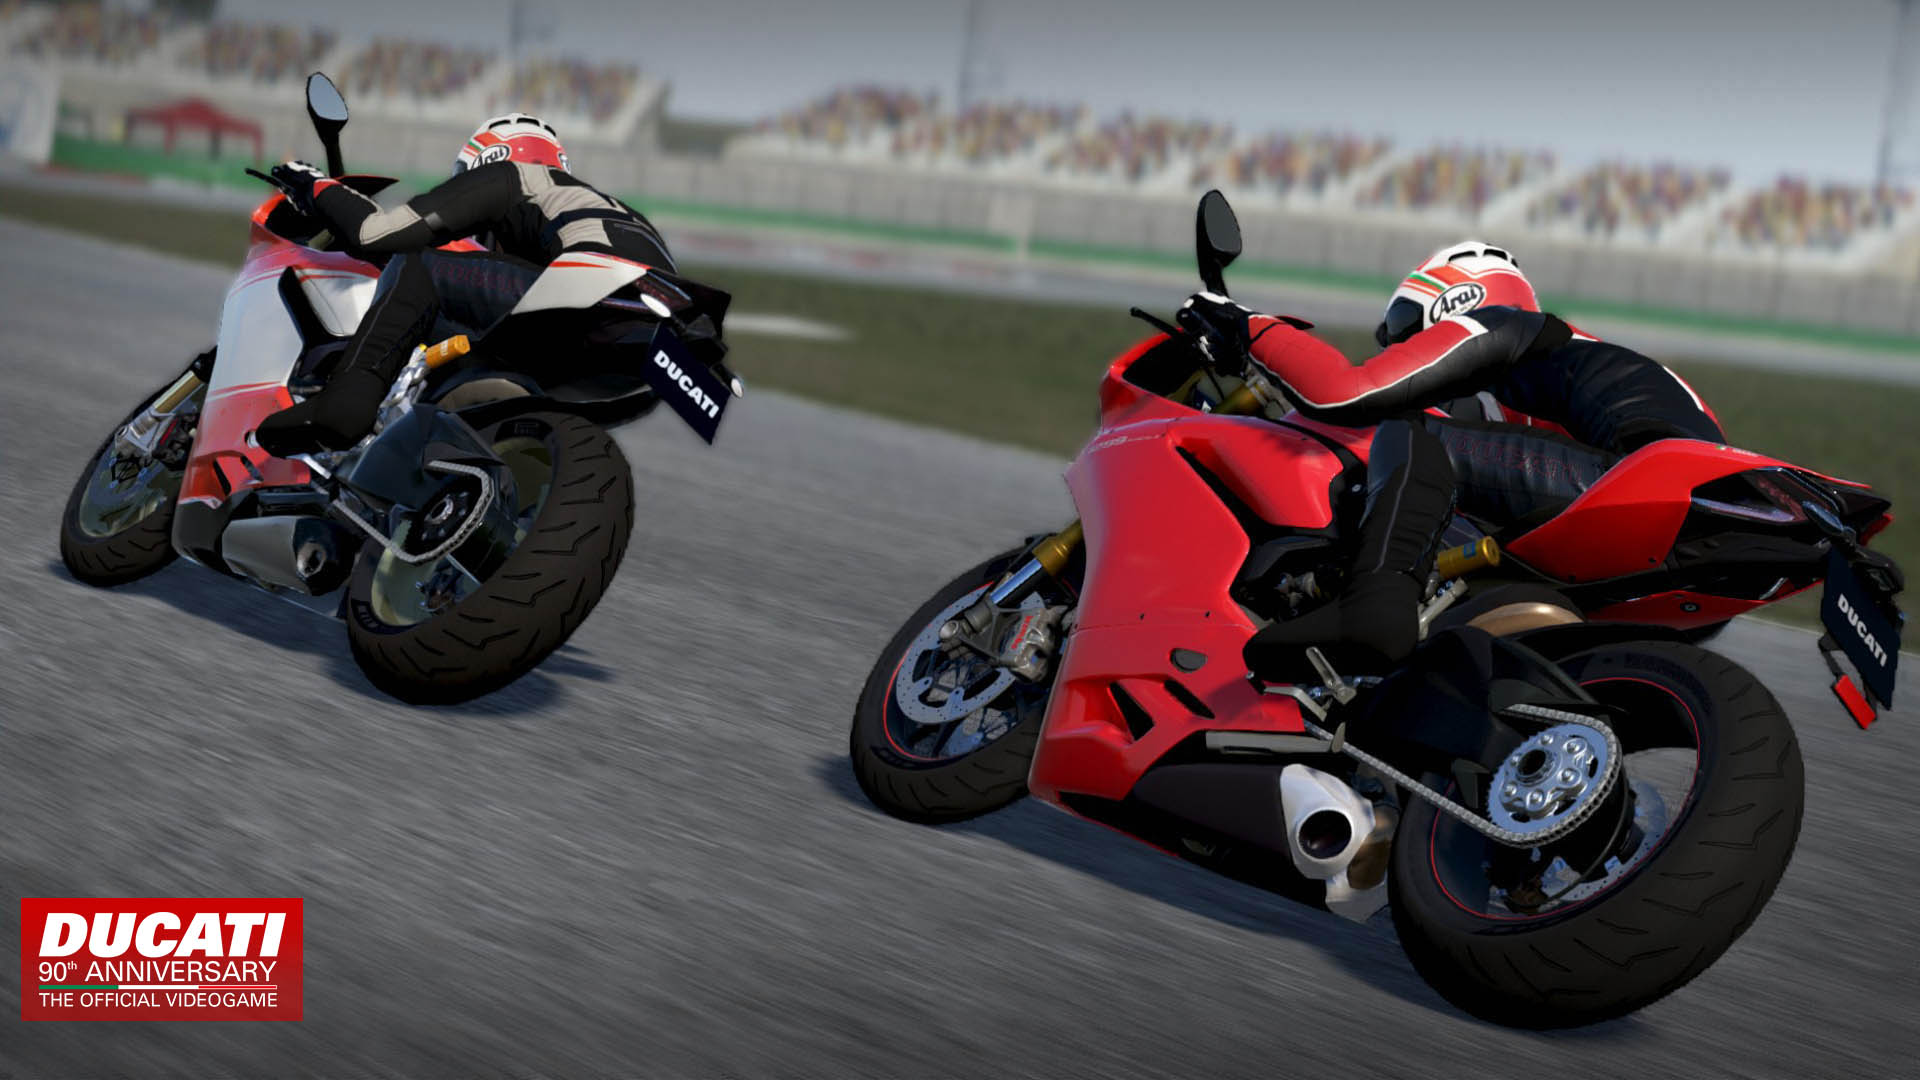 ducati-90th-anniversary-the-official-videogame-arrives-in-june_2